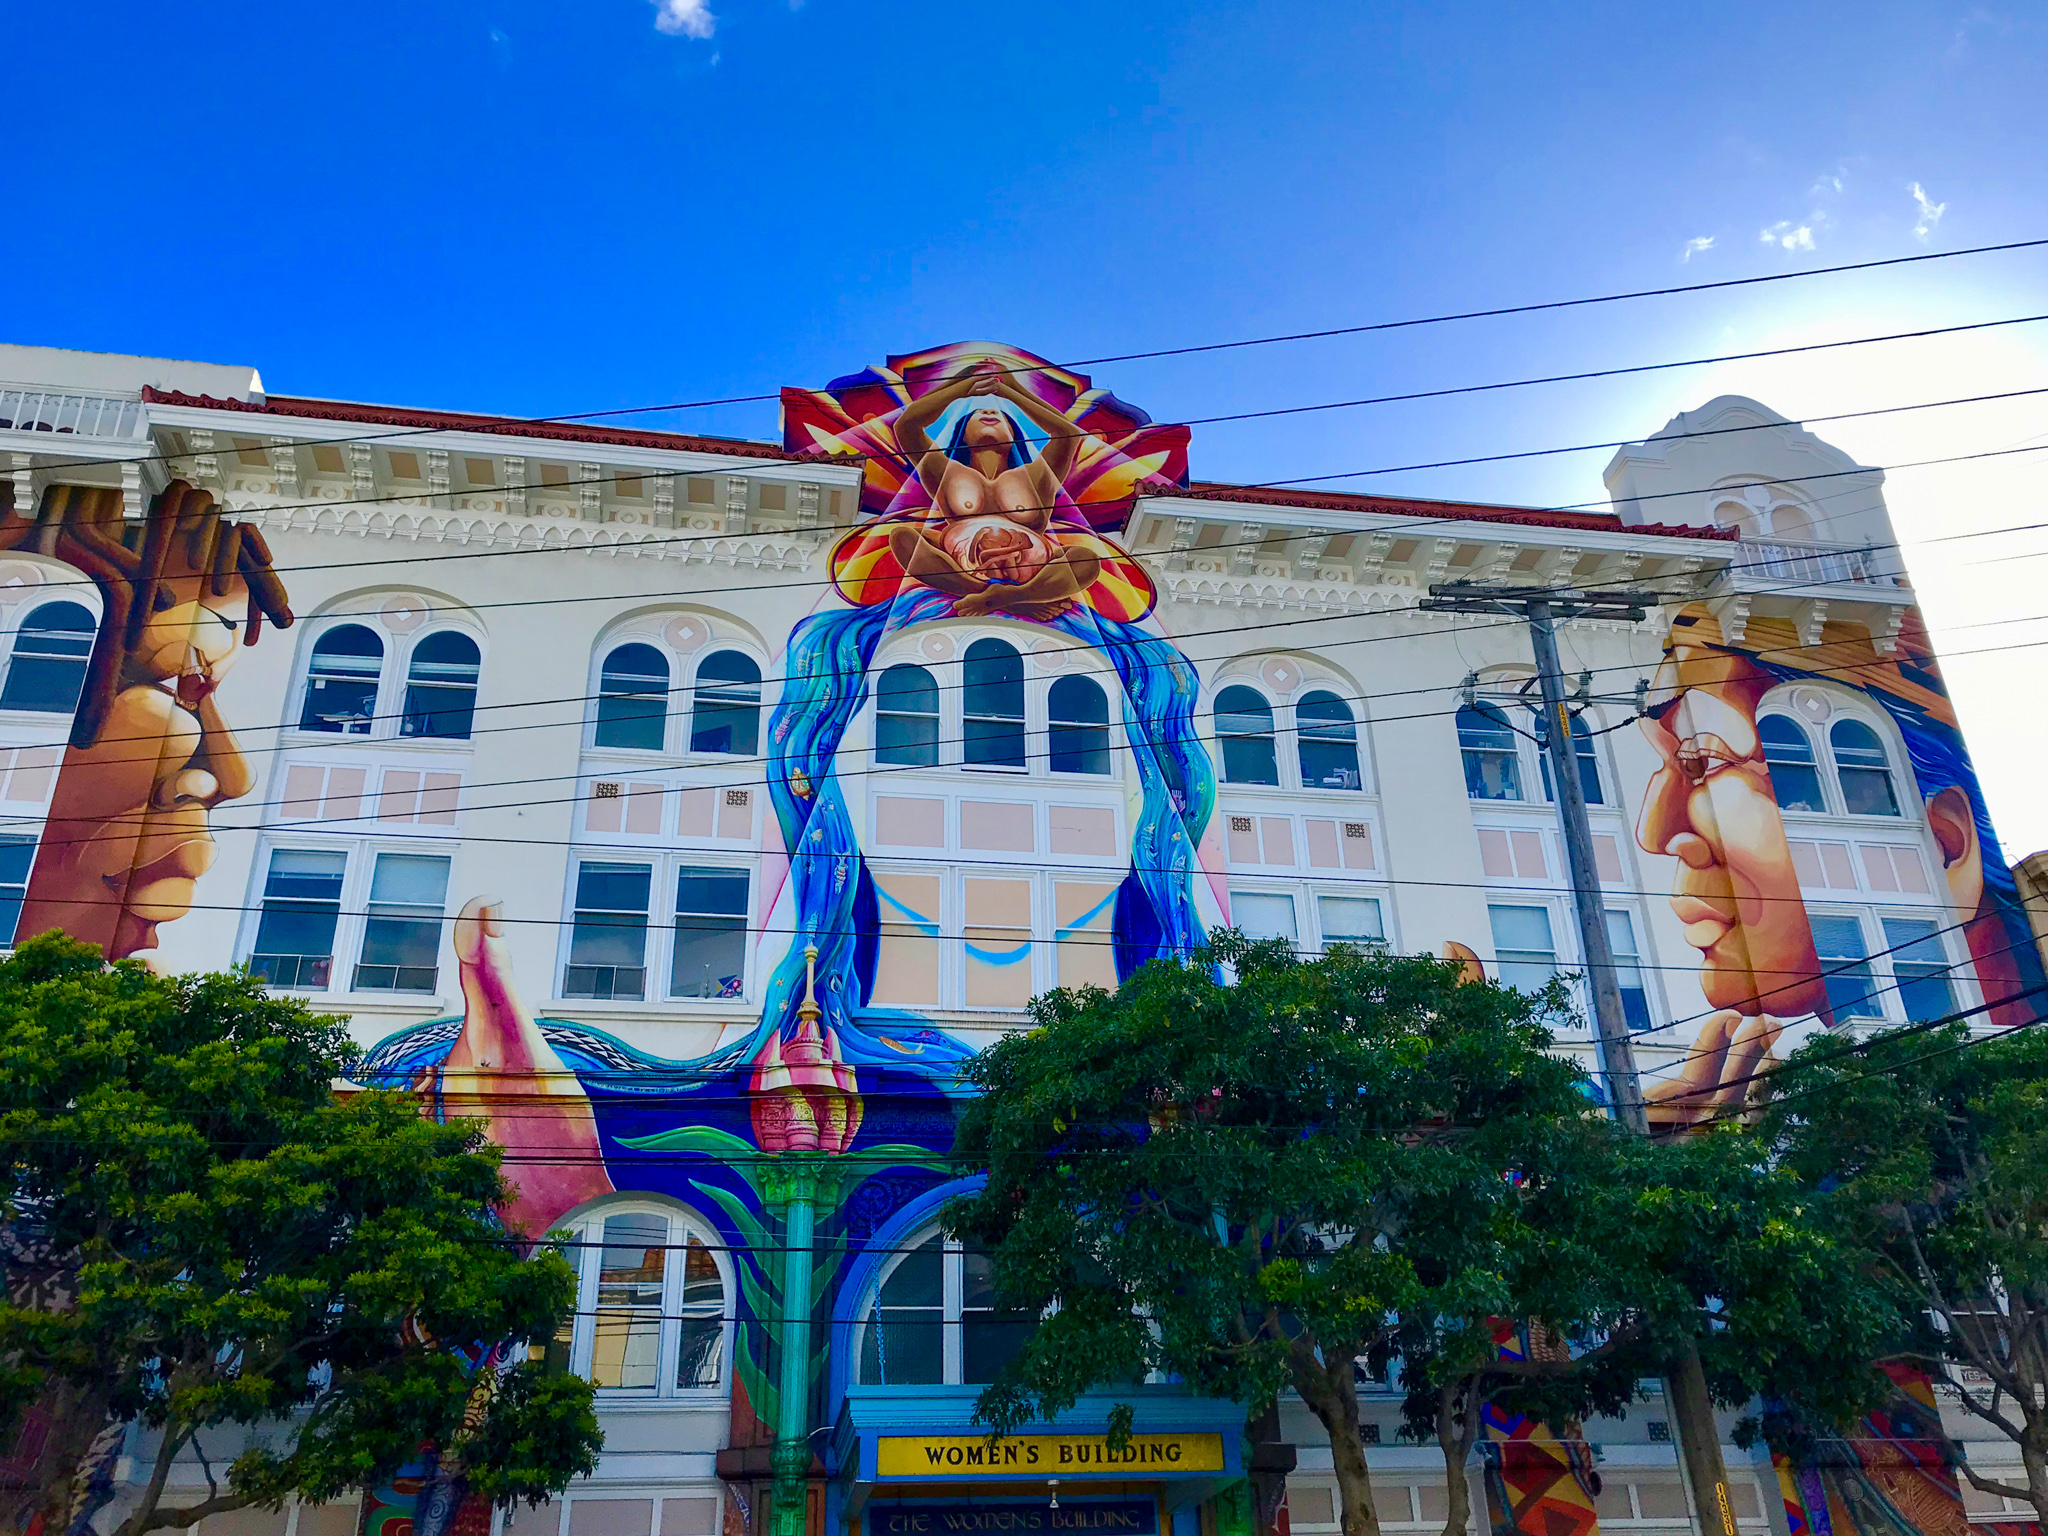 The building front of Women's building at Mission District, San Francisco.